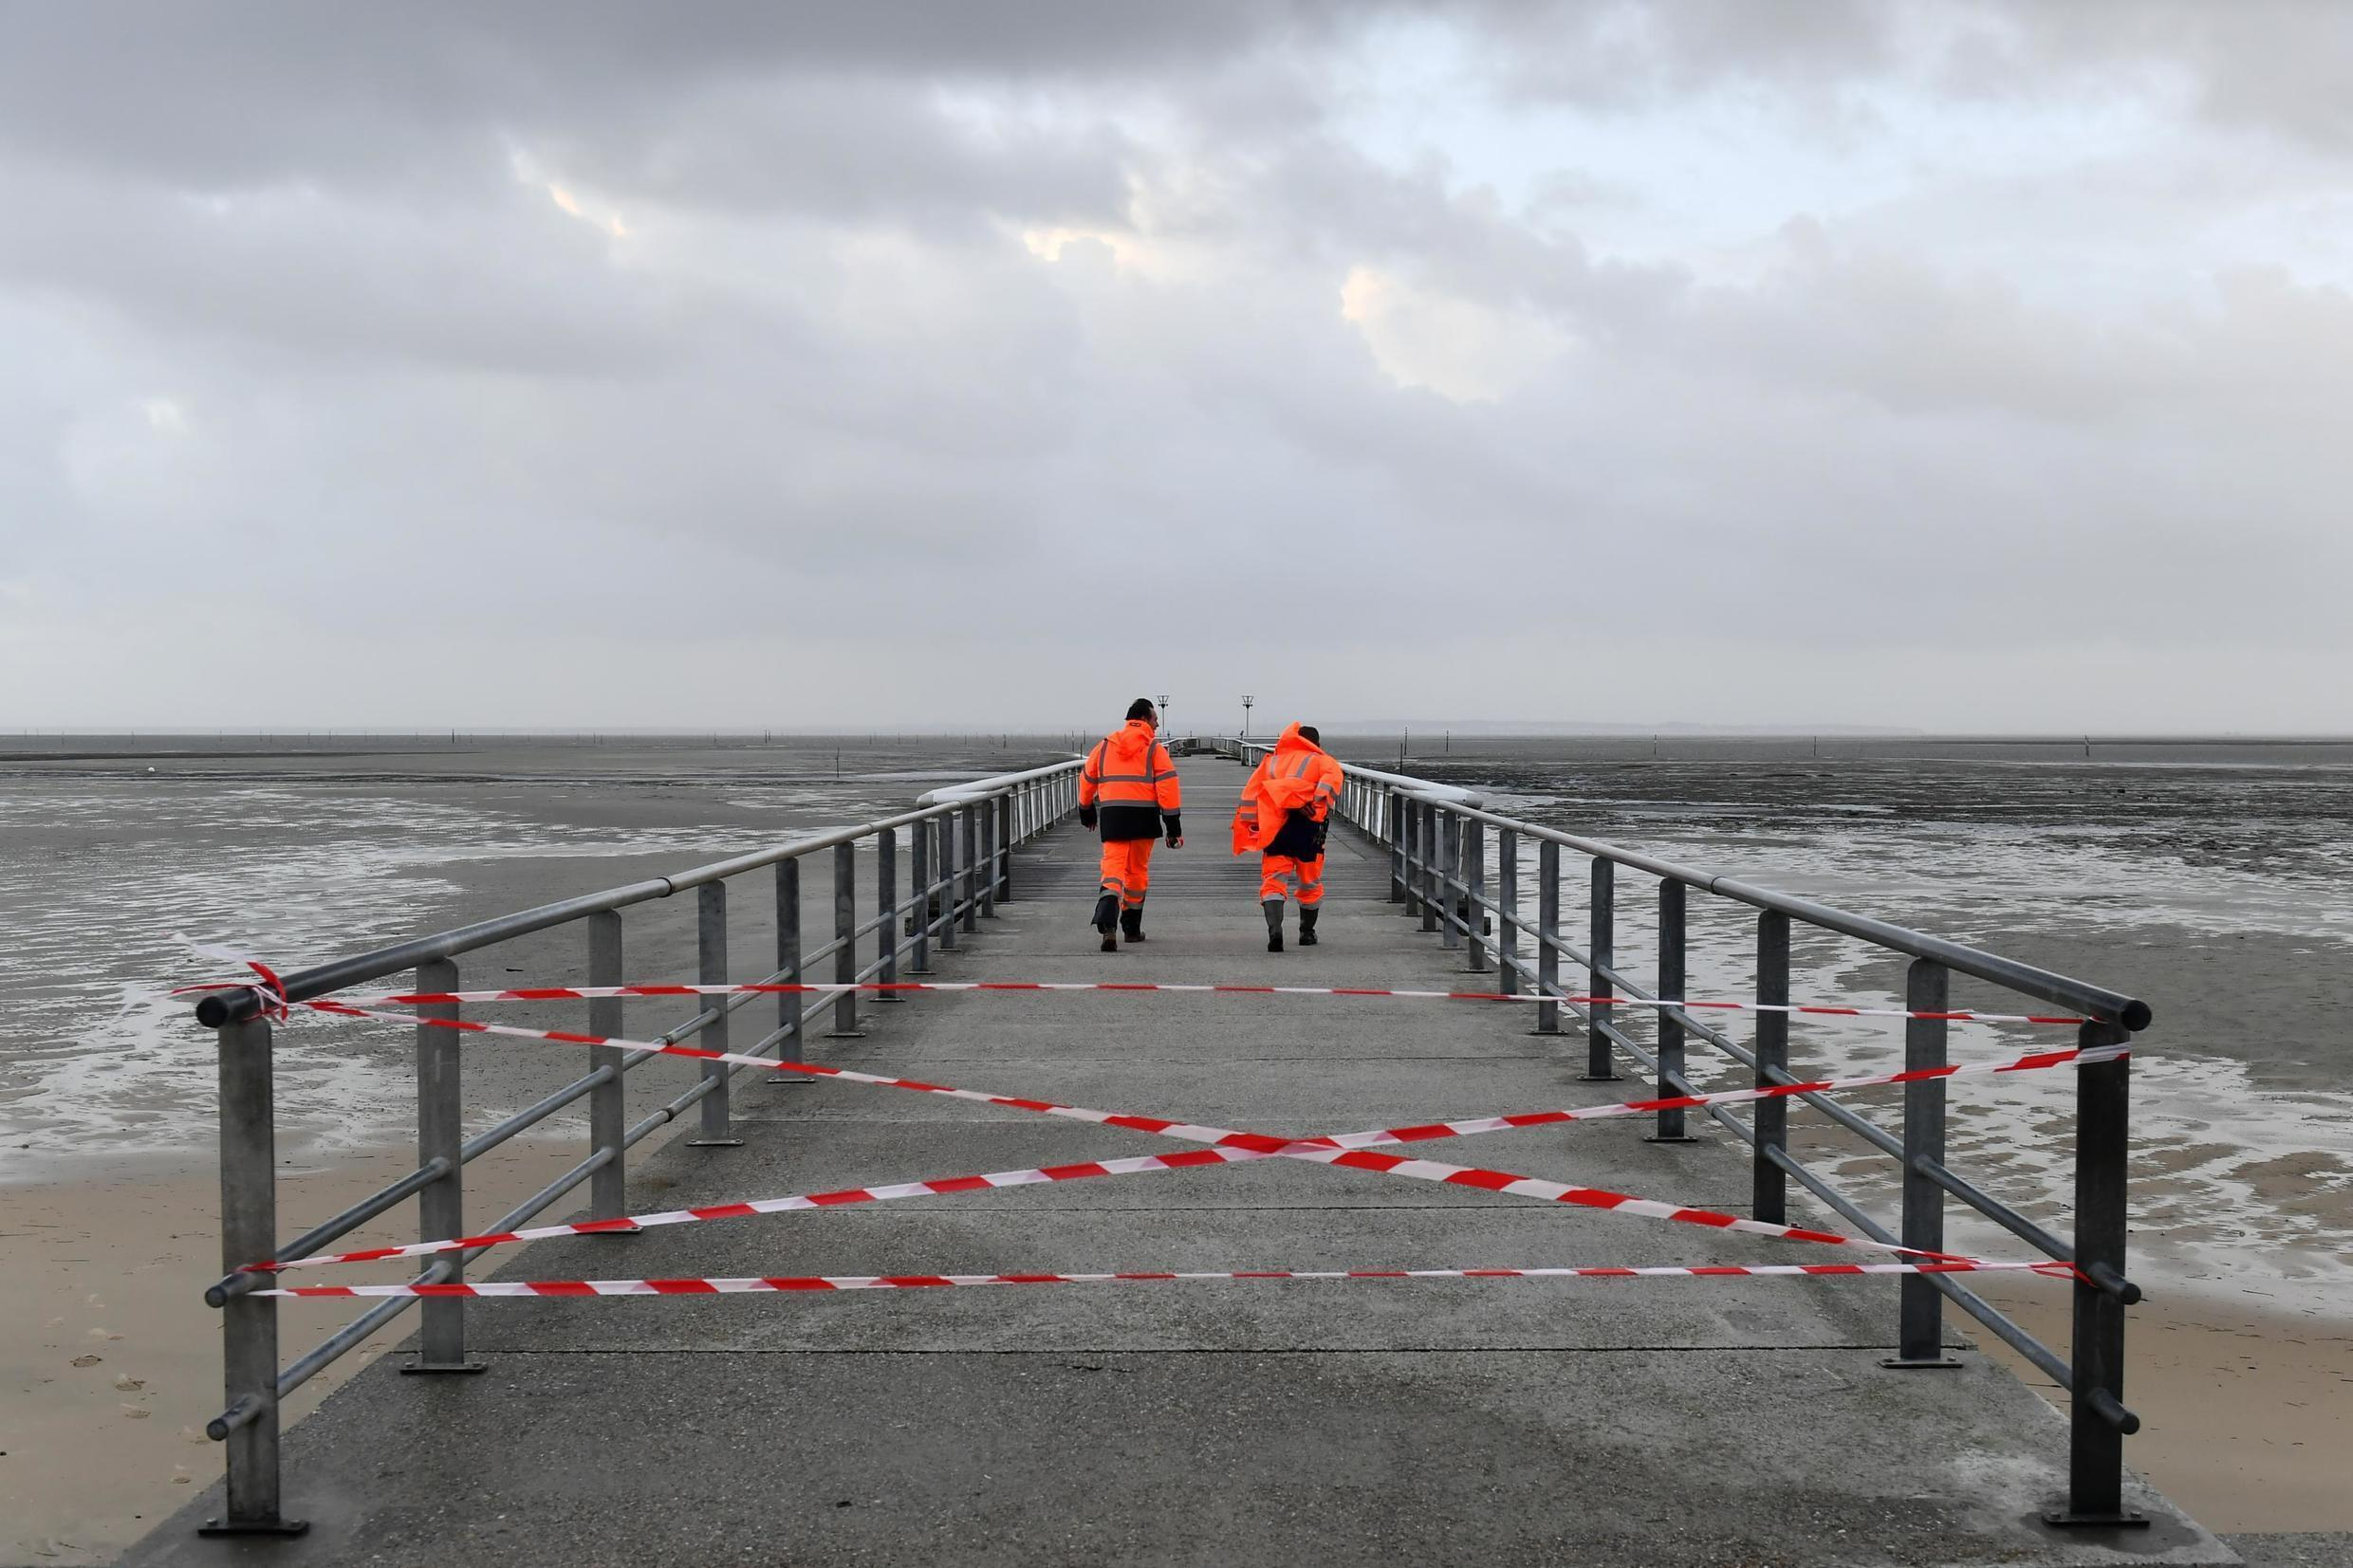 City workers walk on a forbidden pier in the Arcachon basin city of Andernos on December 22, 2019, on the morning after the winter storm 'Fabien'.